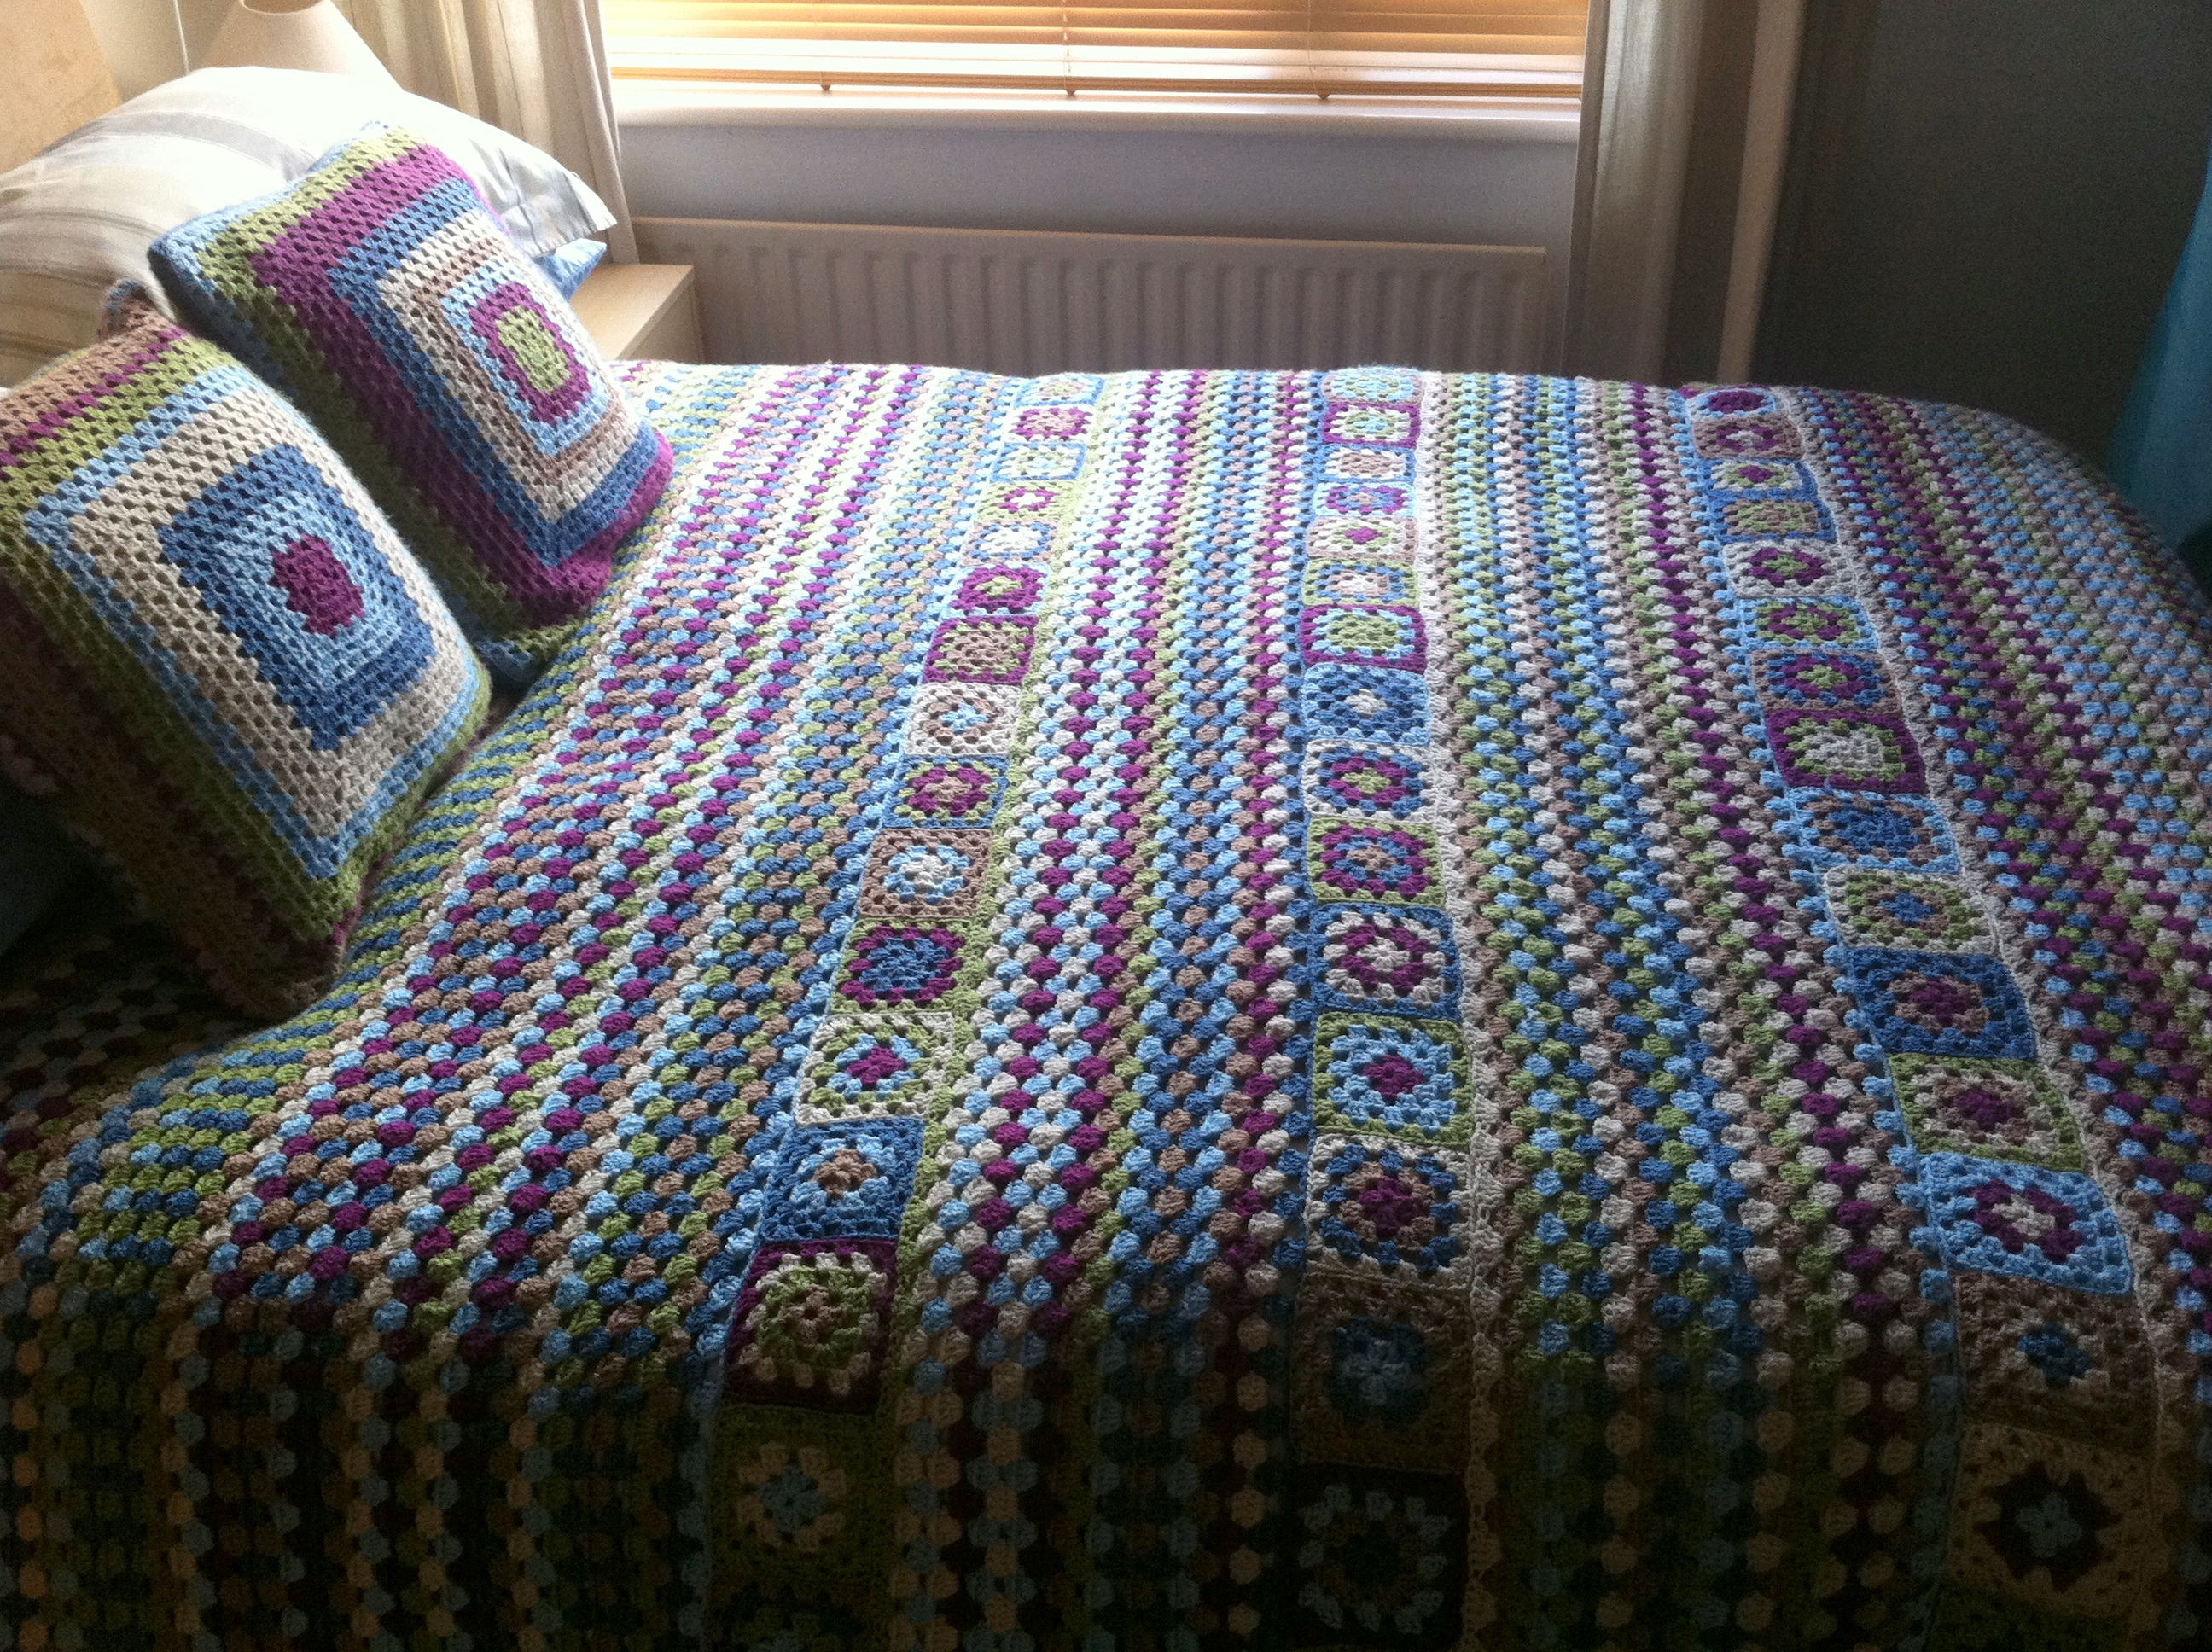 How Many Granny Squares To Make A Single Size Beds